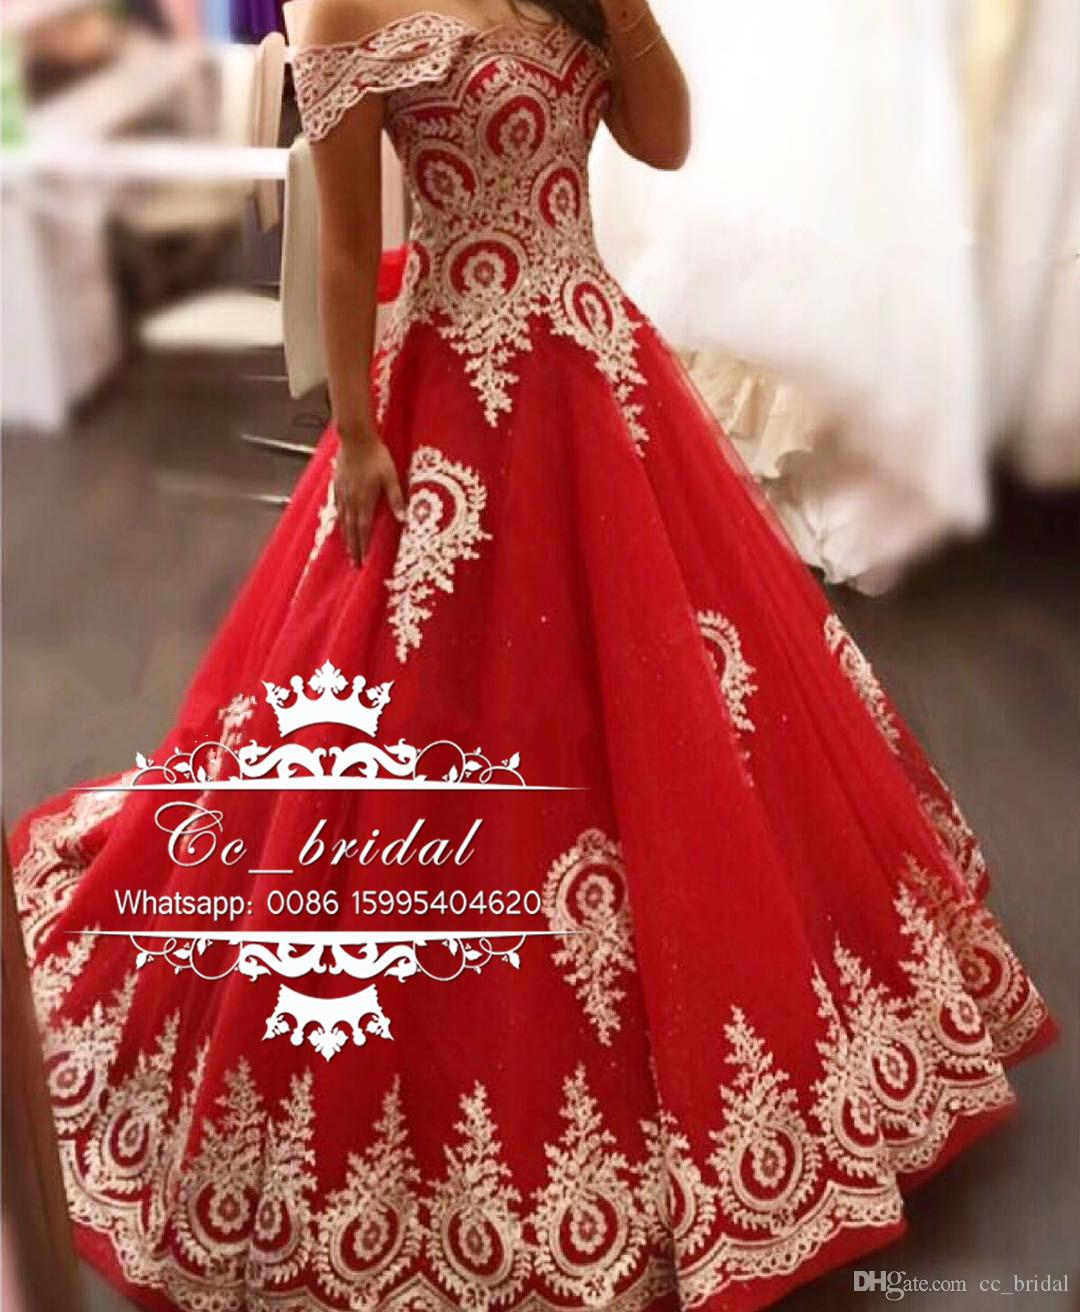 2017 New Red Ball Gown Prom Dresses Gold Appliques Lace Long Evening Gowns Tulle Floor Length Plus Size Dresses Custom Made Cheap Sale